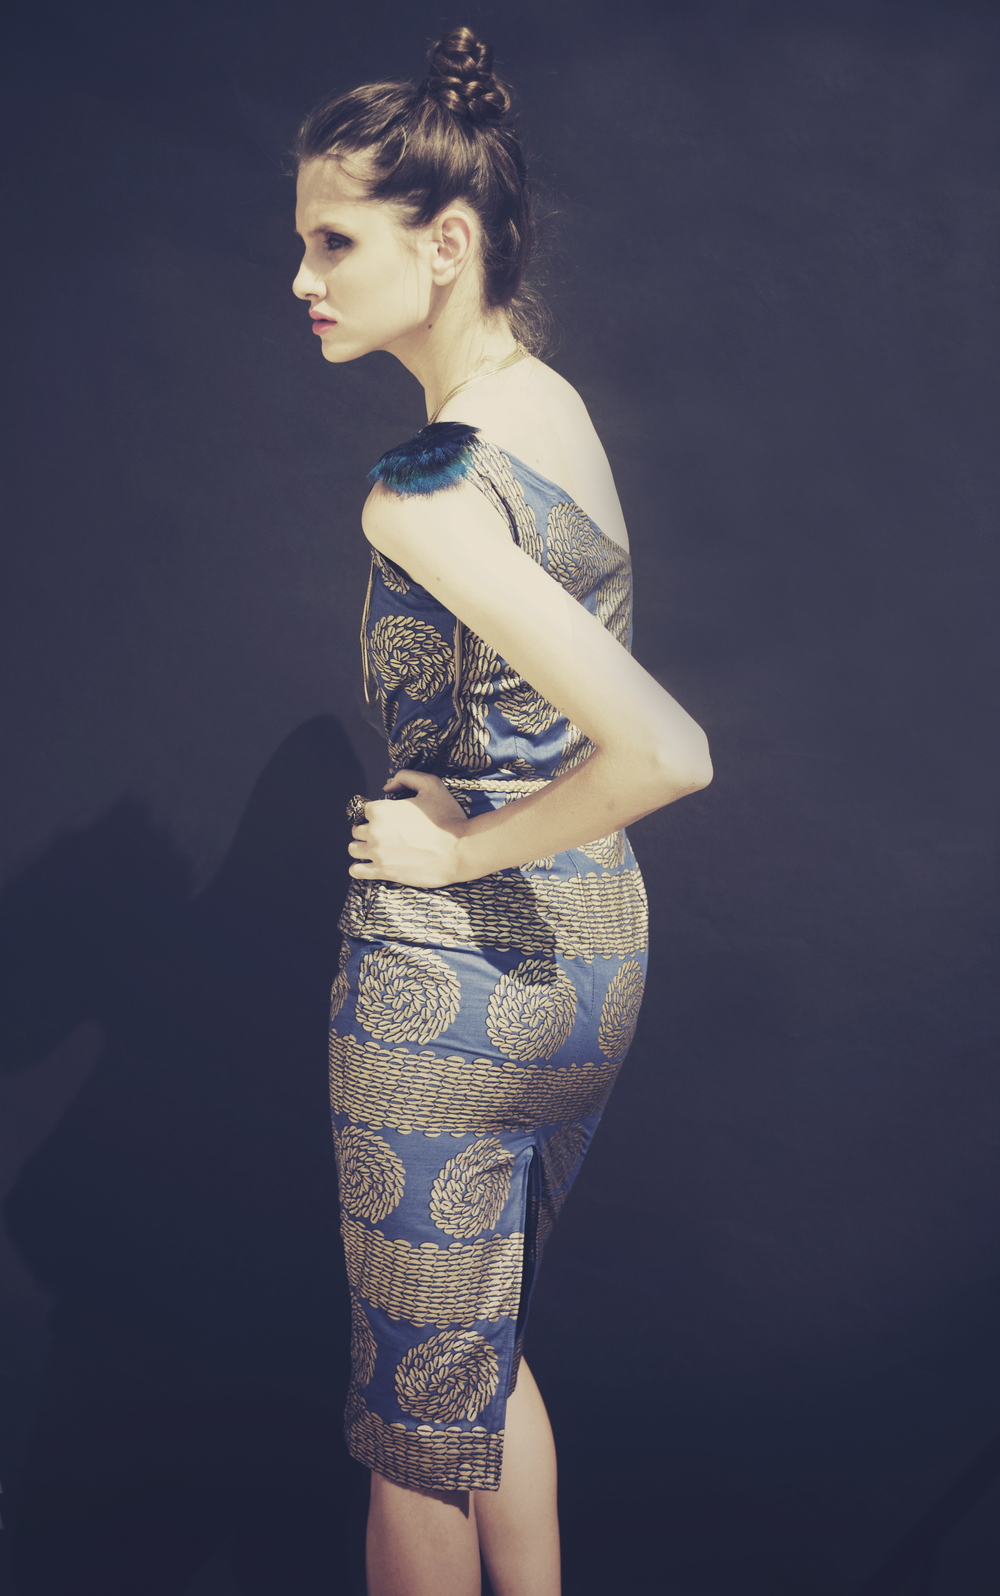 designs by Meghan Sebold. shot by Erik Heck. edited by Abby Ross. styled by Meghan Sebold. makeup by Katie Robinson.